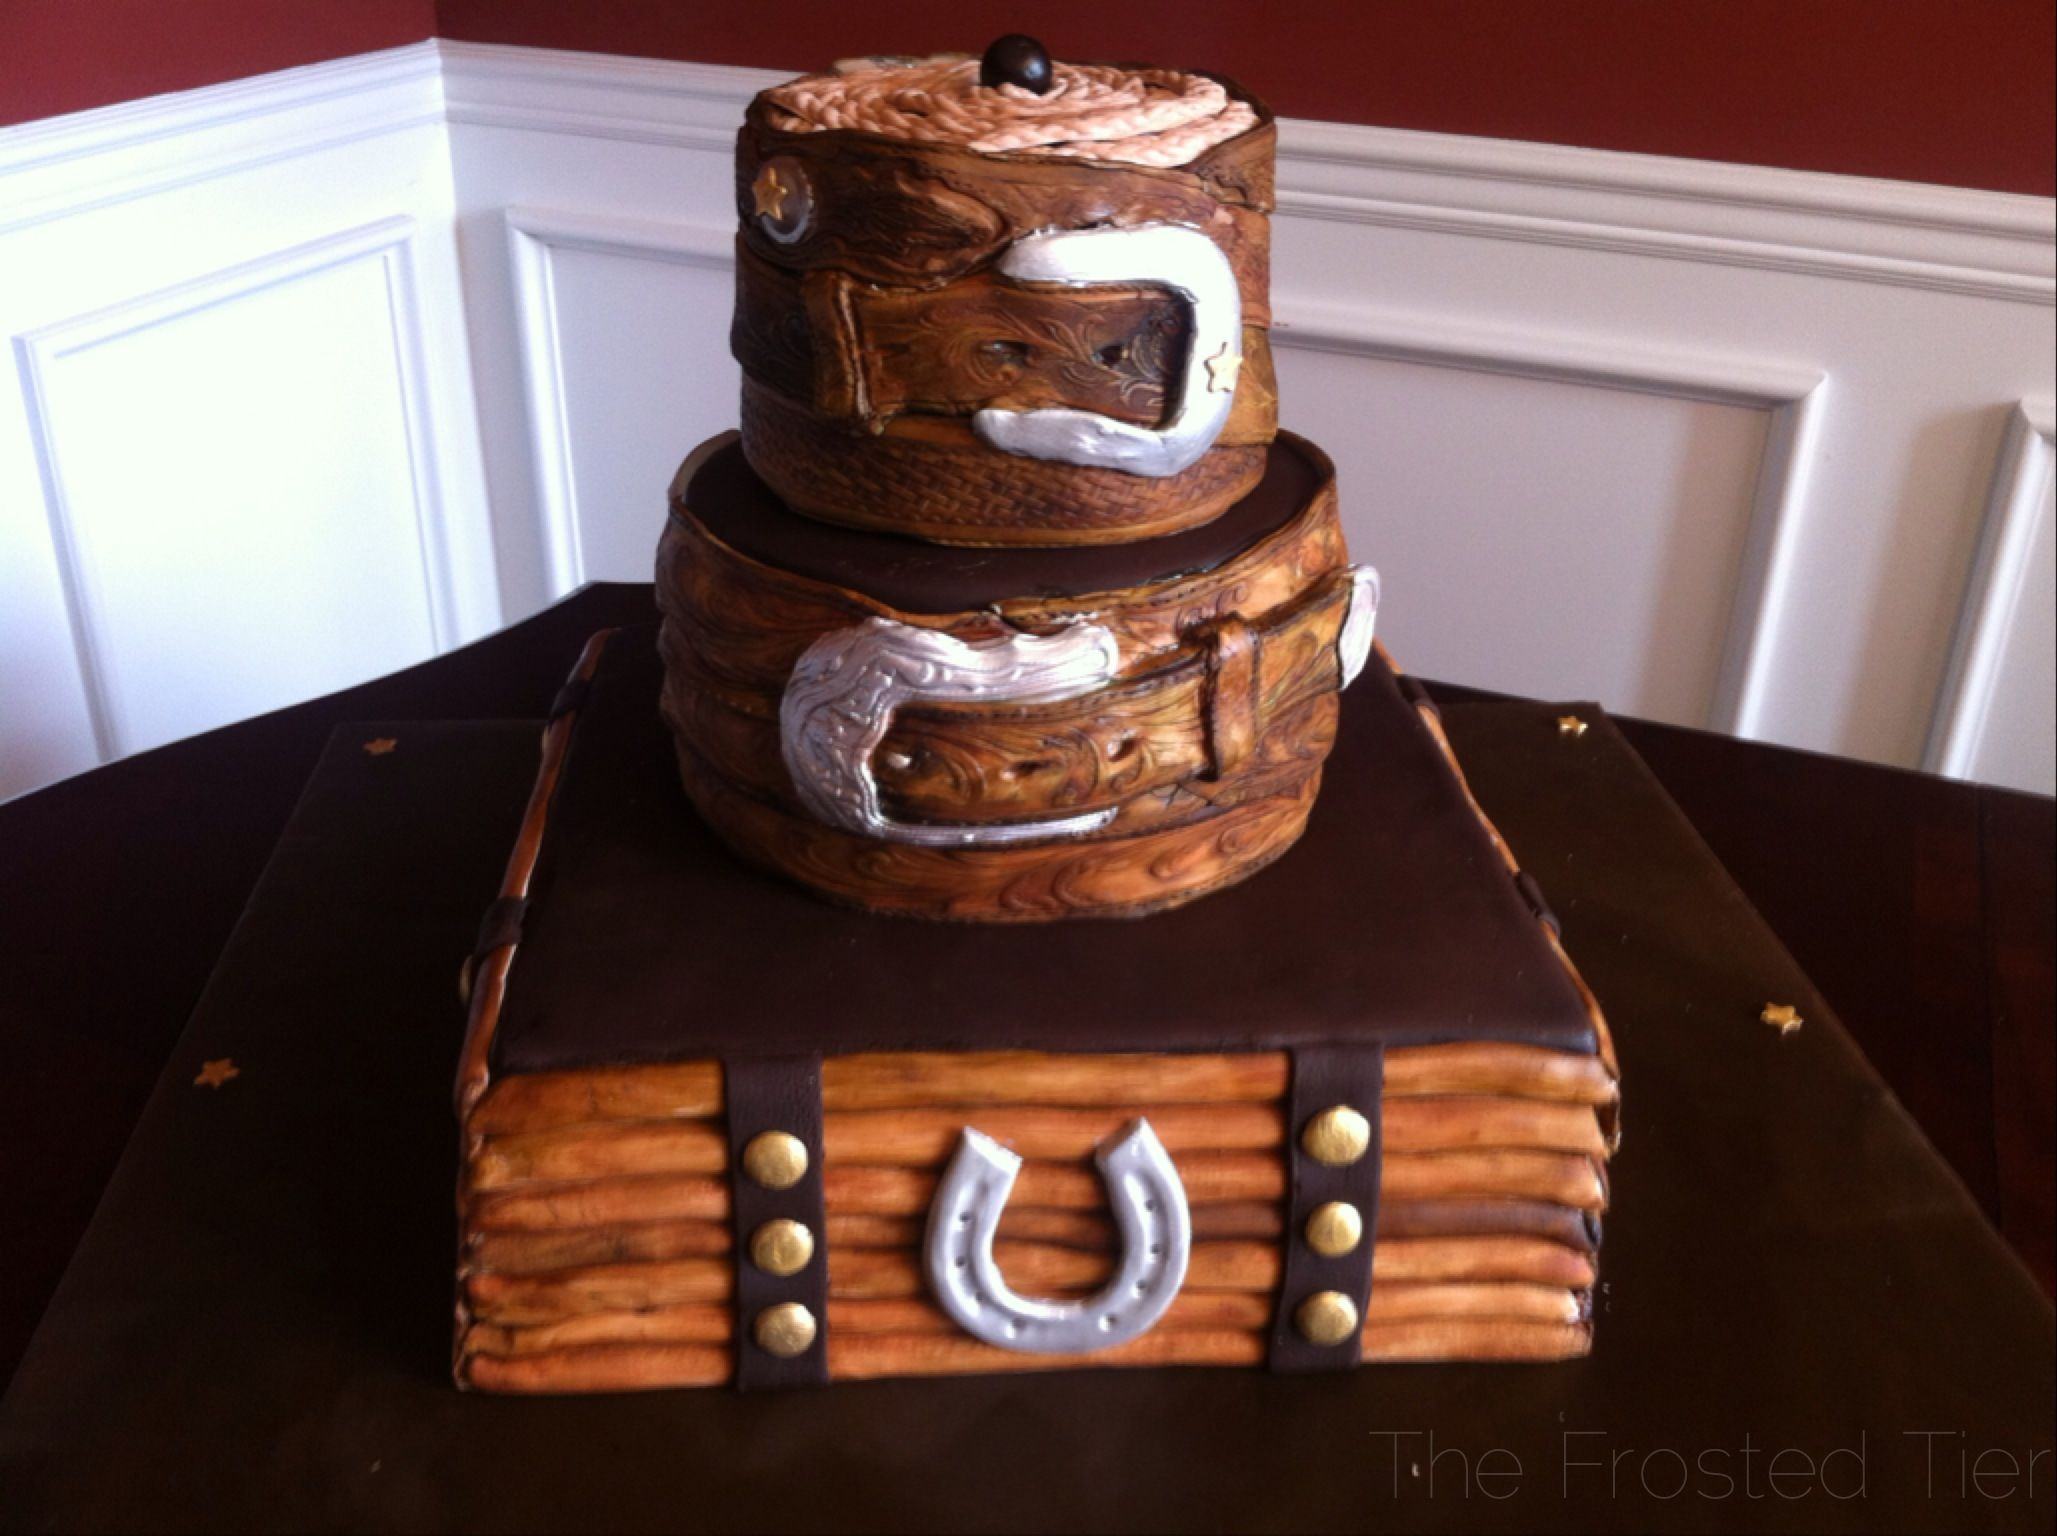 Western Belt Buckle Cake By The Frosted Tier In Nashville